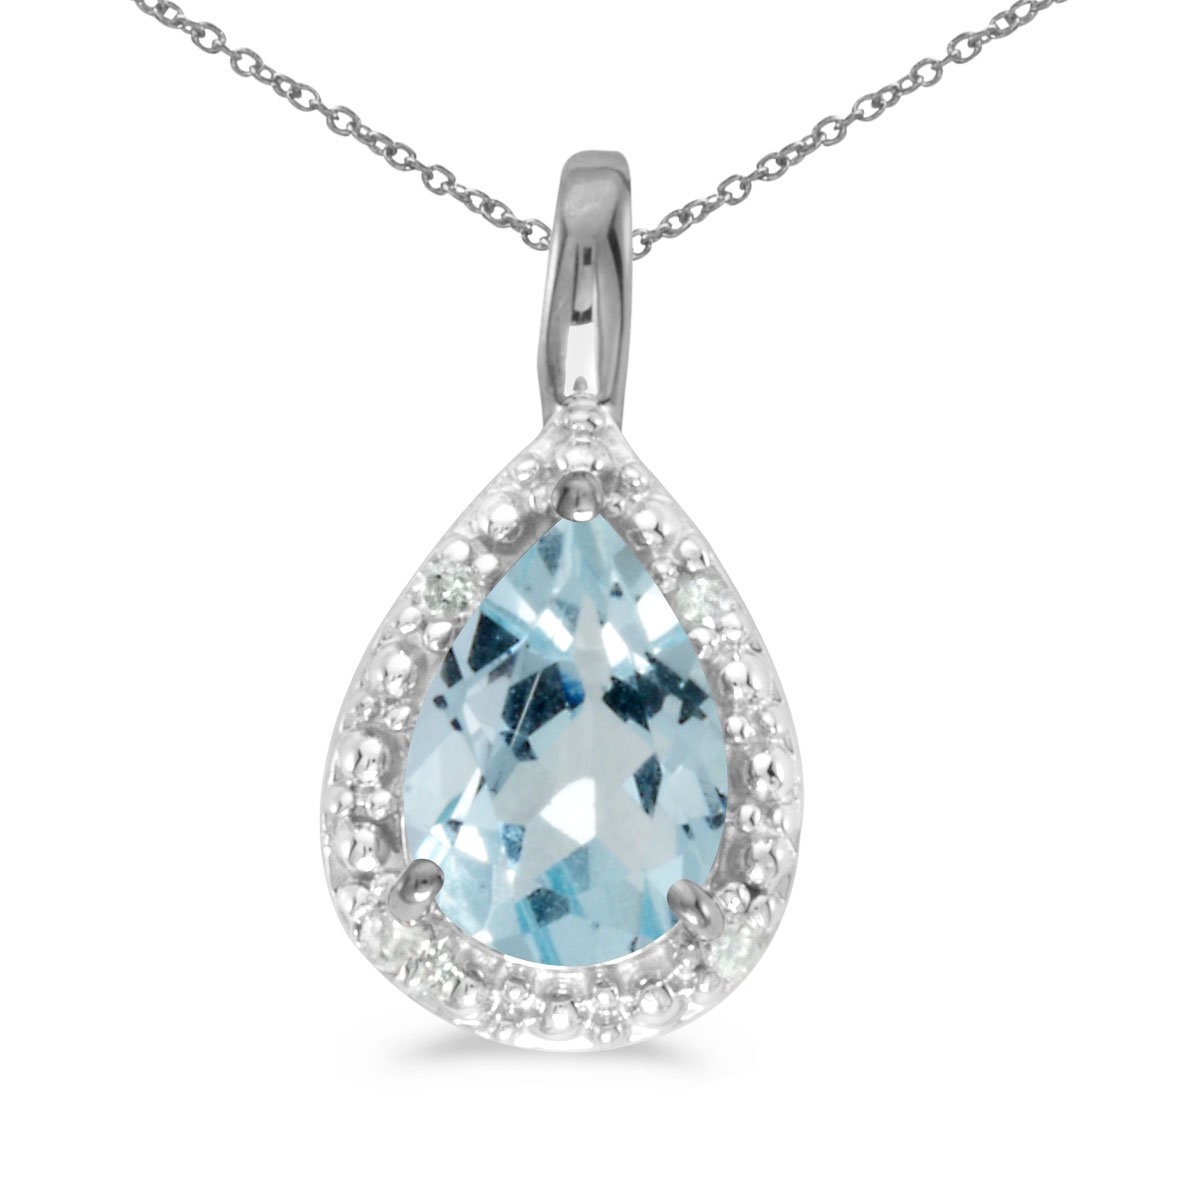 10k White Gold Pear Aquamarine Pendant with 18'' Chain